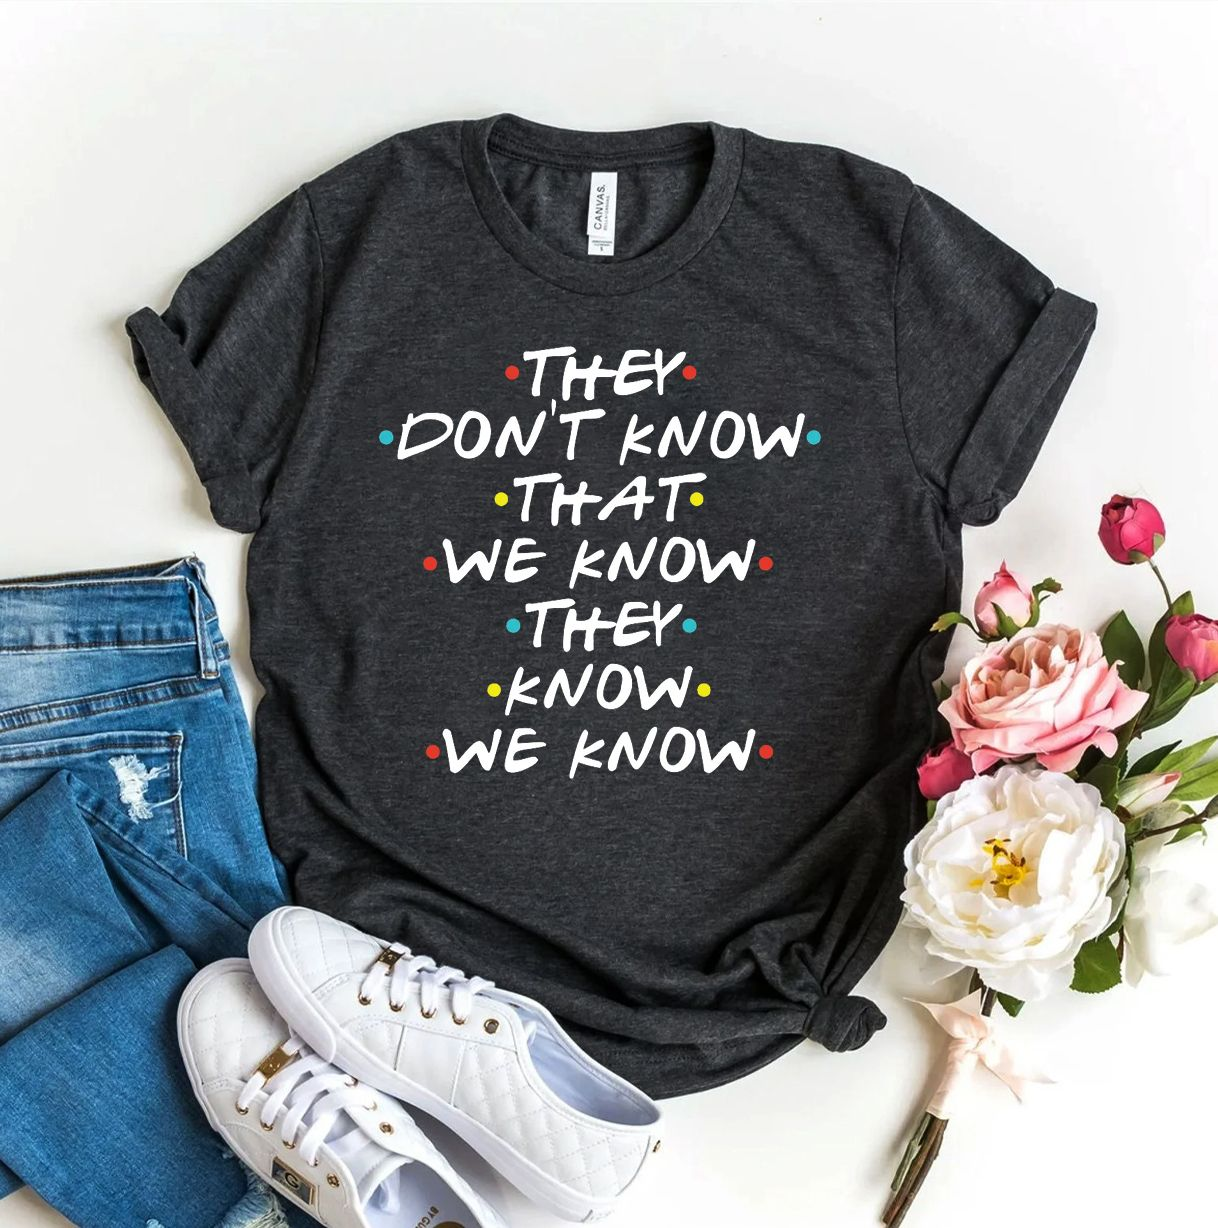 They Don't Know That We Know T-shirt, Christmas Gift For Friend, Humor Shirt, Funny Tshirt, Typography Top, Sarcastic Shirts, Protest Tshirt - Deep This unisex shirt fits like a well-loved favorite, featuring a crew neck, short sleeves and designed with superior combed and ring-spun cotton for ultimate comfort. 4.3-ounce, 100% combed ring spun cotton, 30 singles 90/10 combed ring spun cotton/poly (Heather Grey) Slightly slimmer body and shorter sleeves 1x1 rib knit neck Tear-away label Shoulder